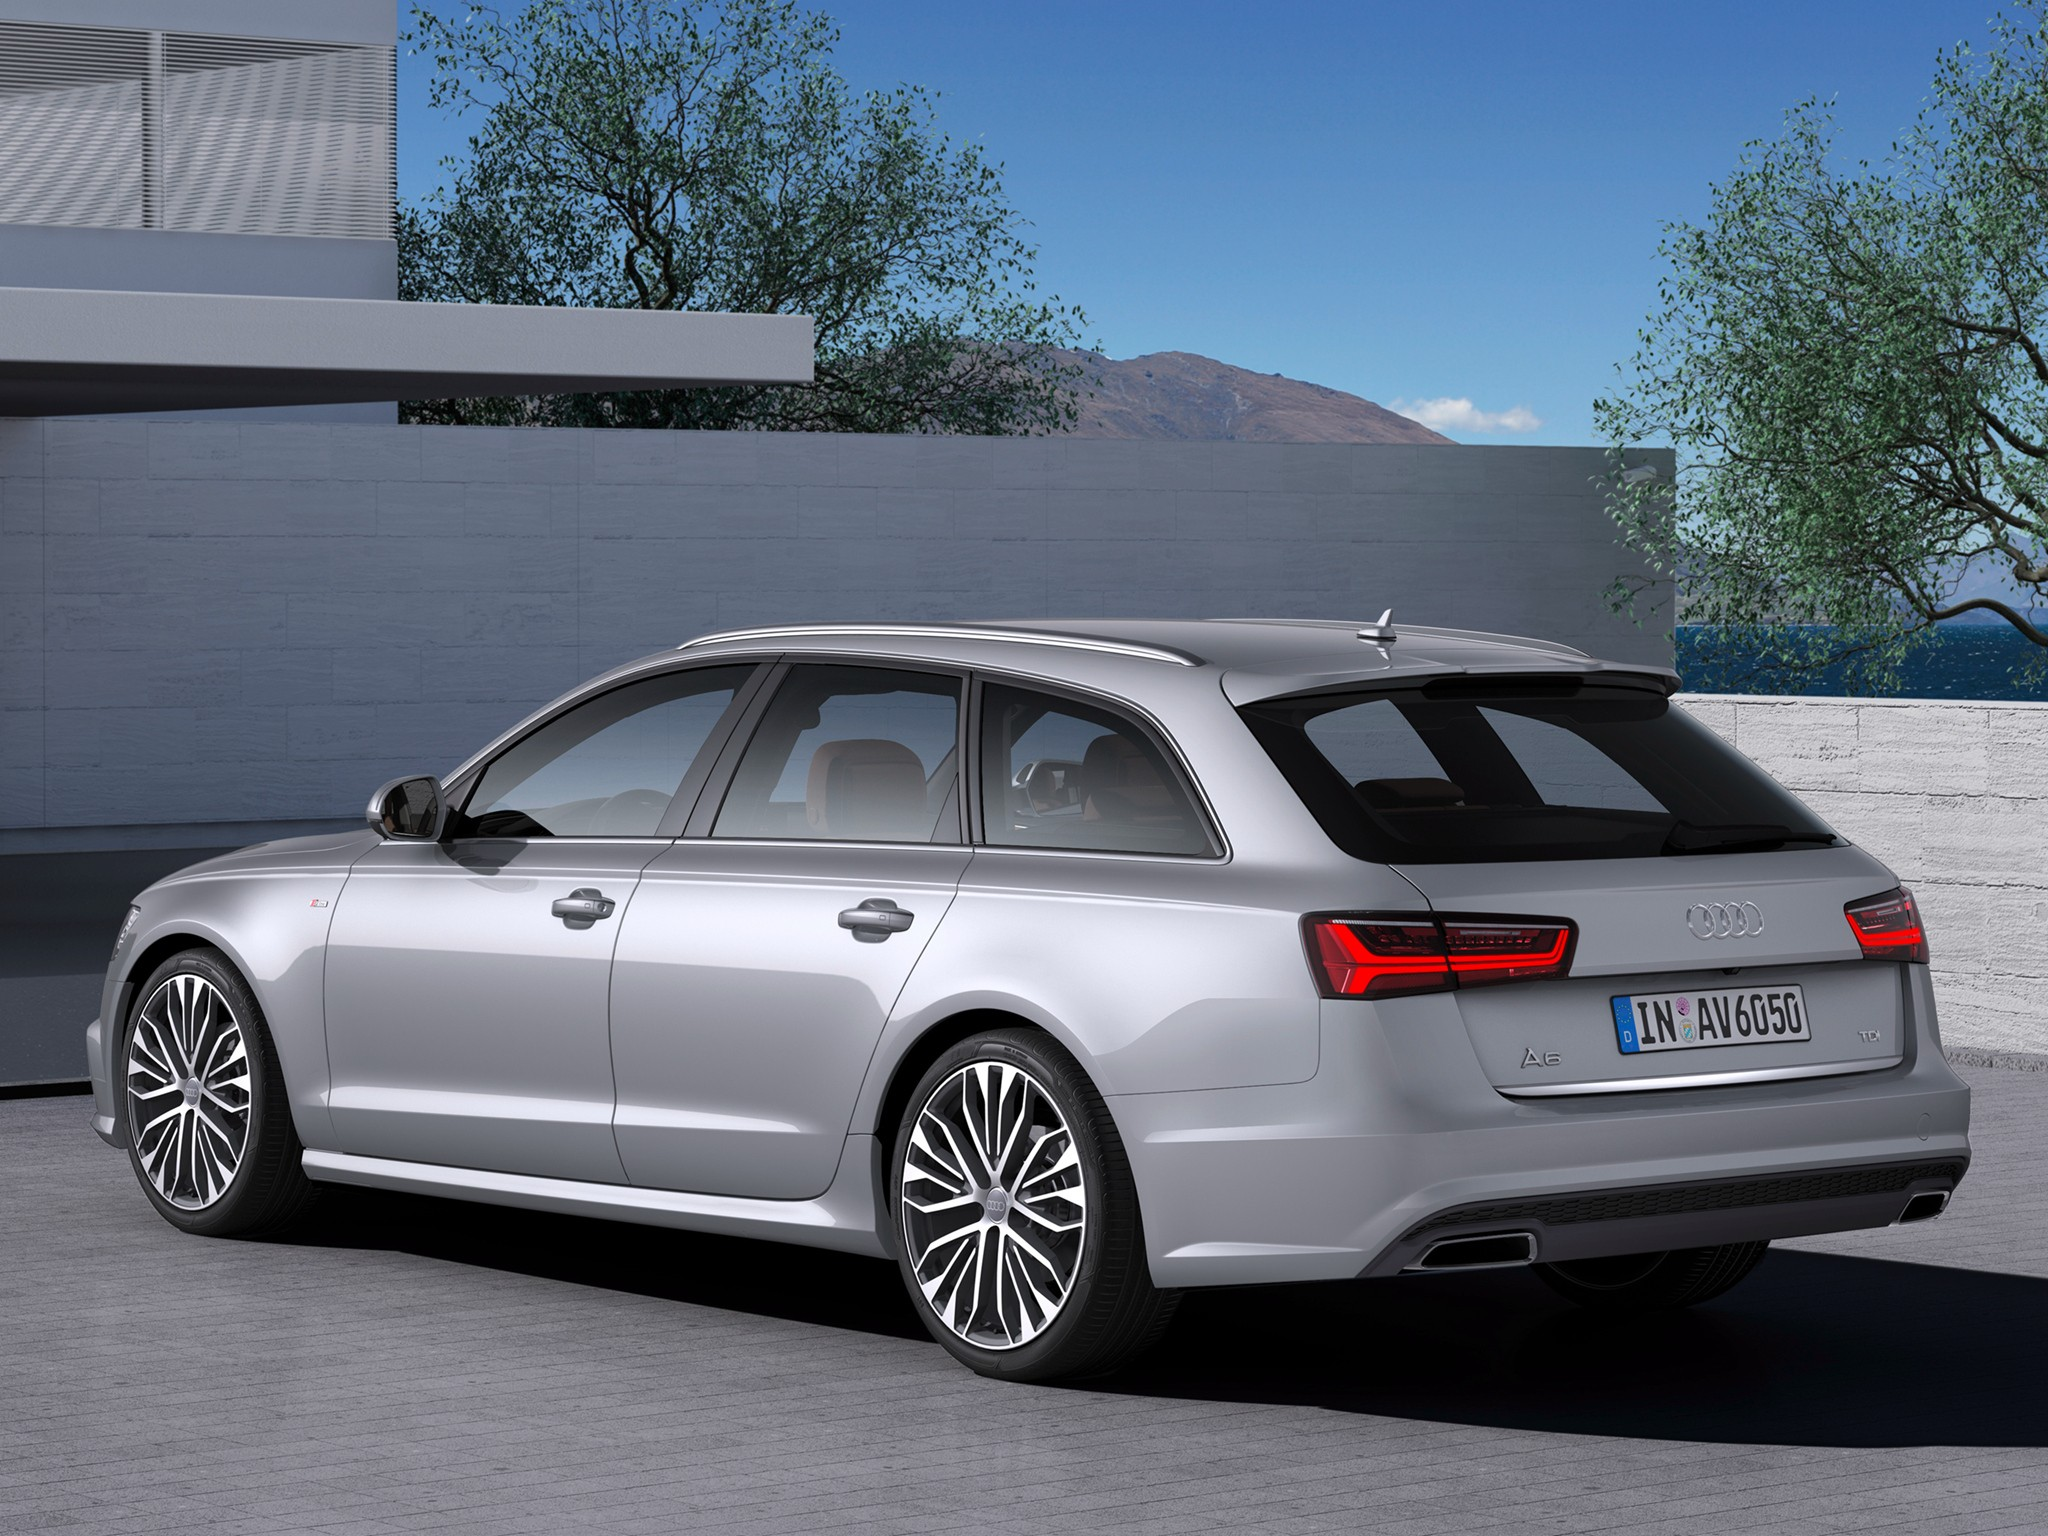 audi a6 avant specs photos 2014 2015 2016 2017. Black Bedroom Furniture Sets. Home Design Ideas